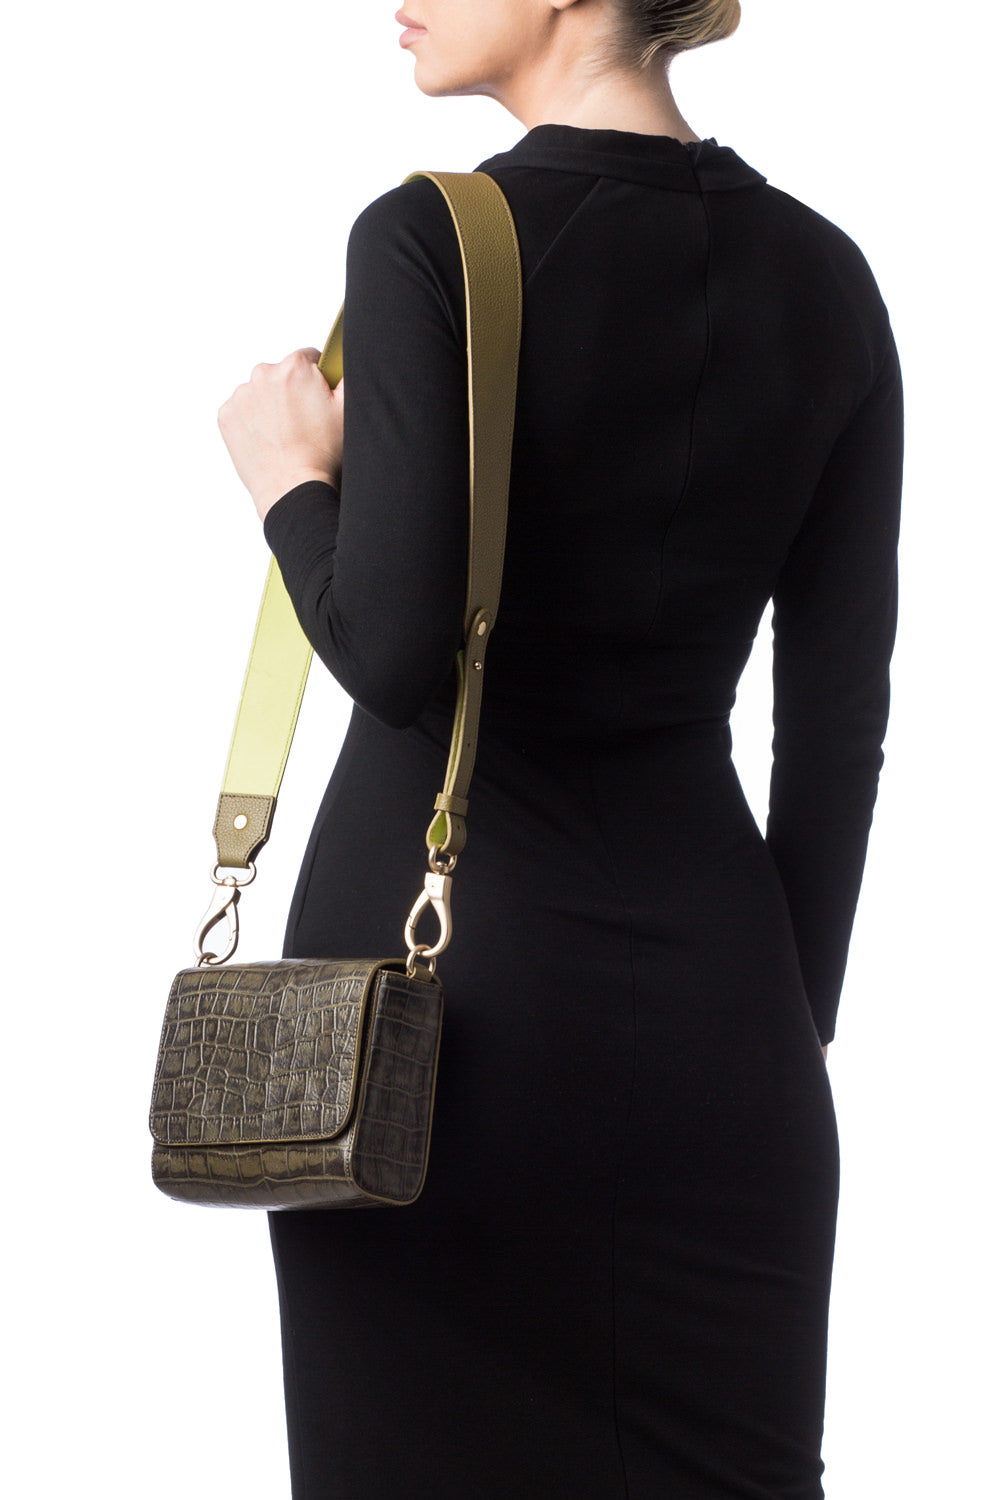 'Gema' Small Shoulder Bag in Green Moss, Croc-Emboss Leather | Mel Boteri | On Body View